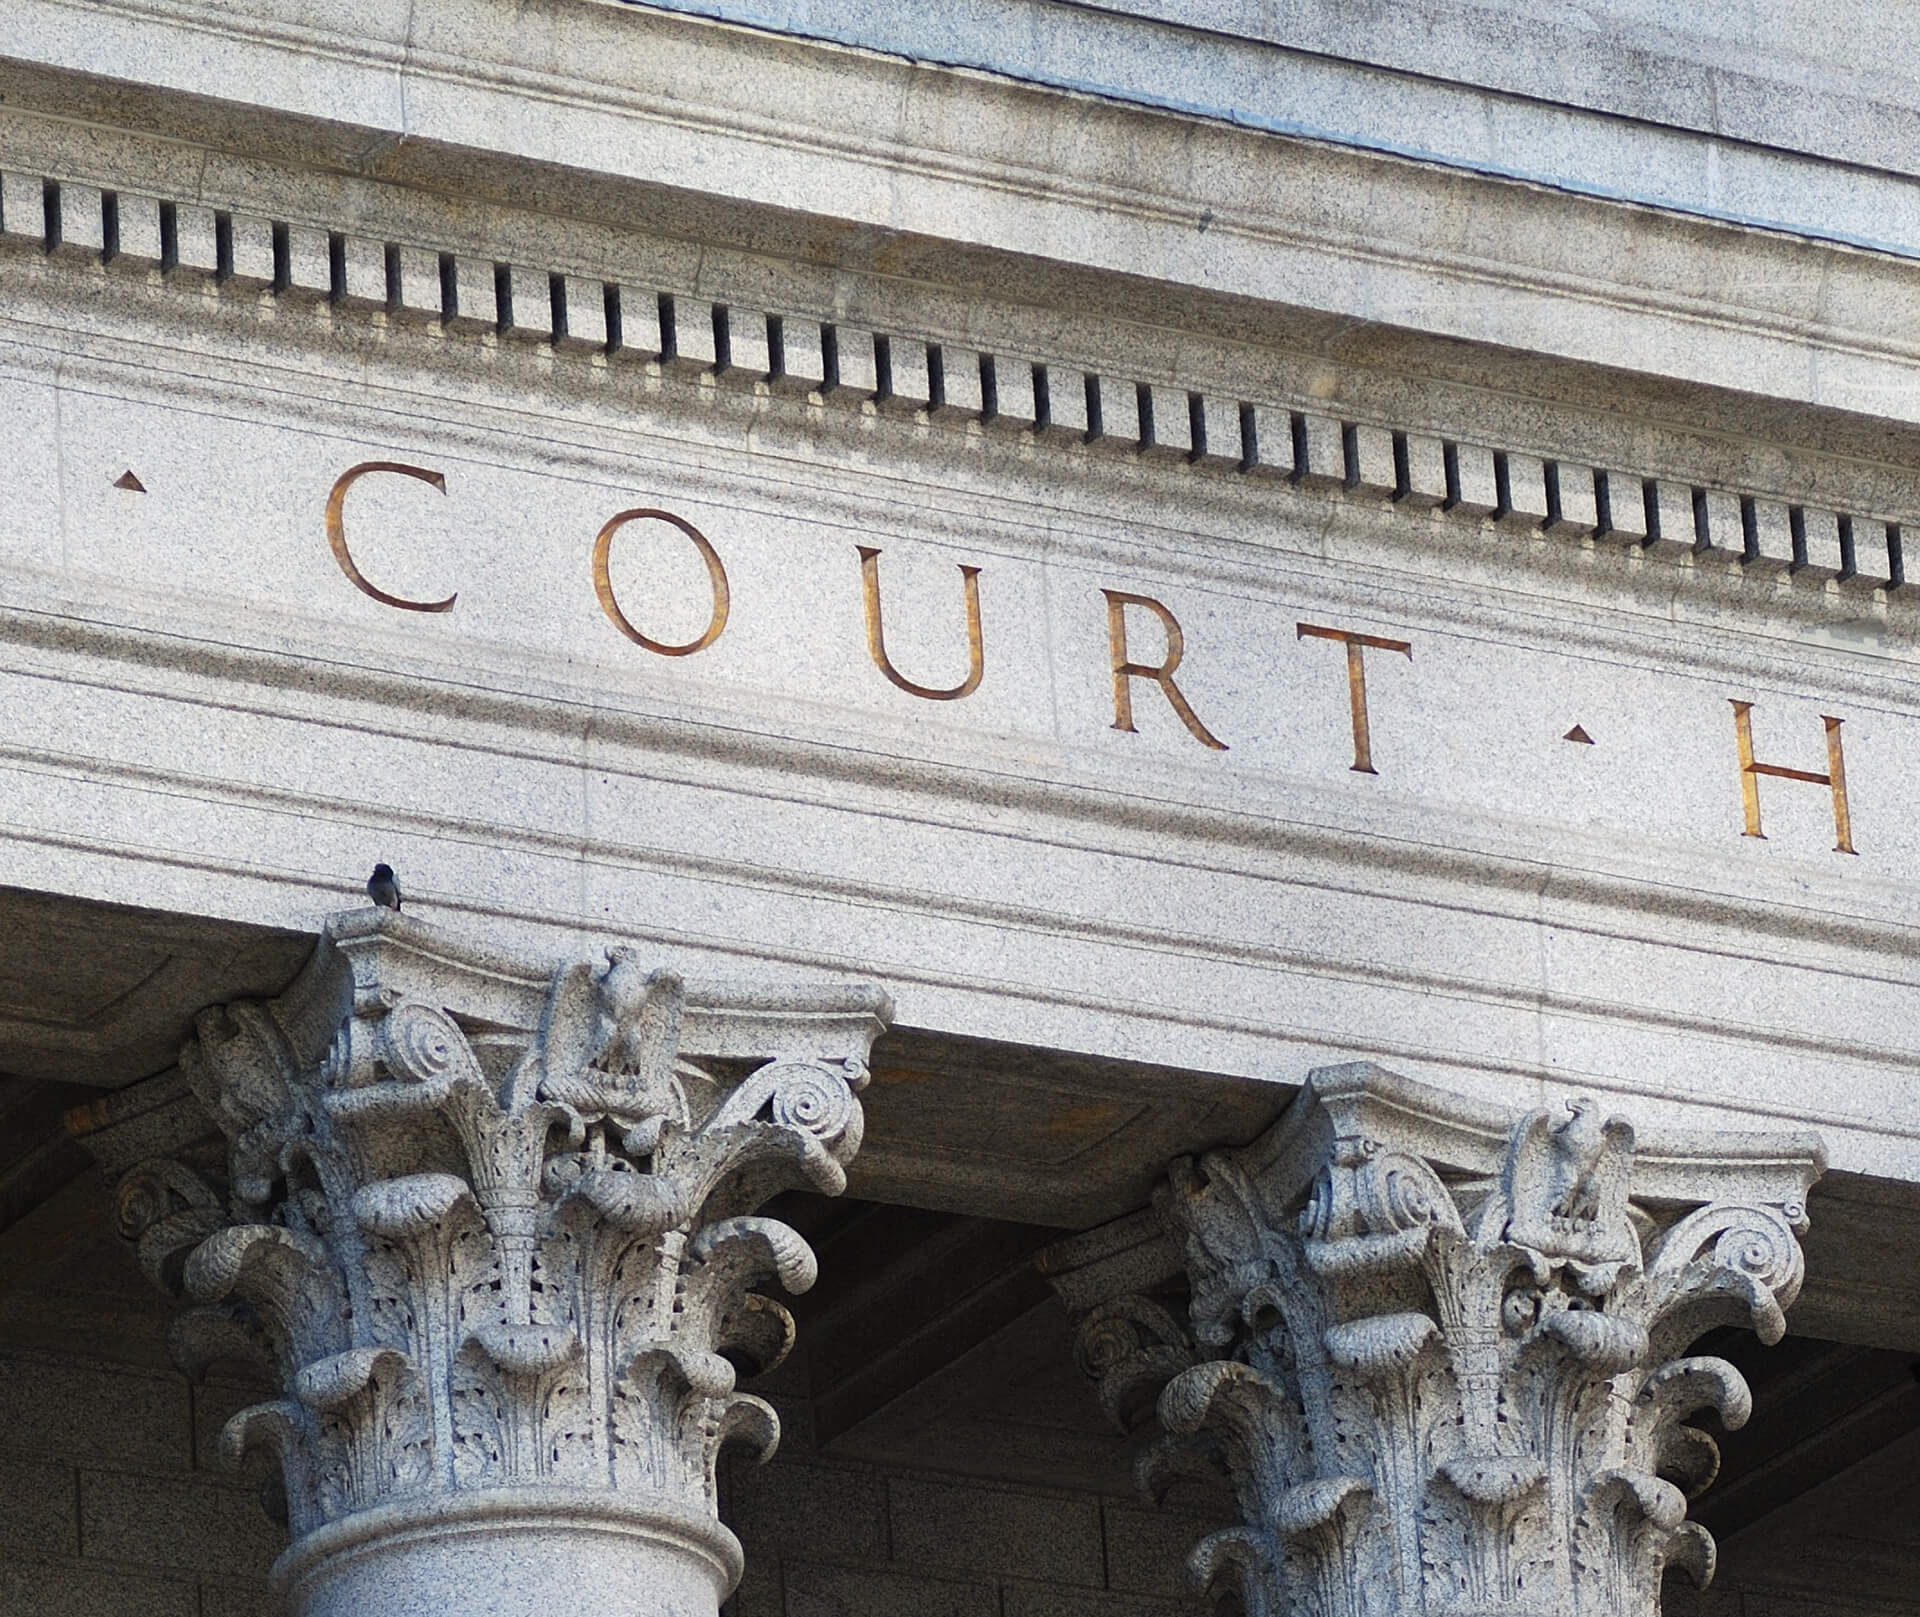 Close-up image of a courthouse